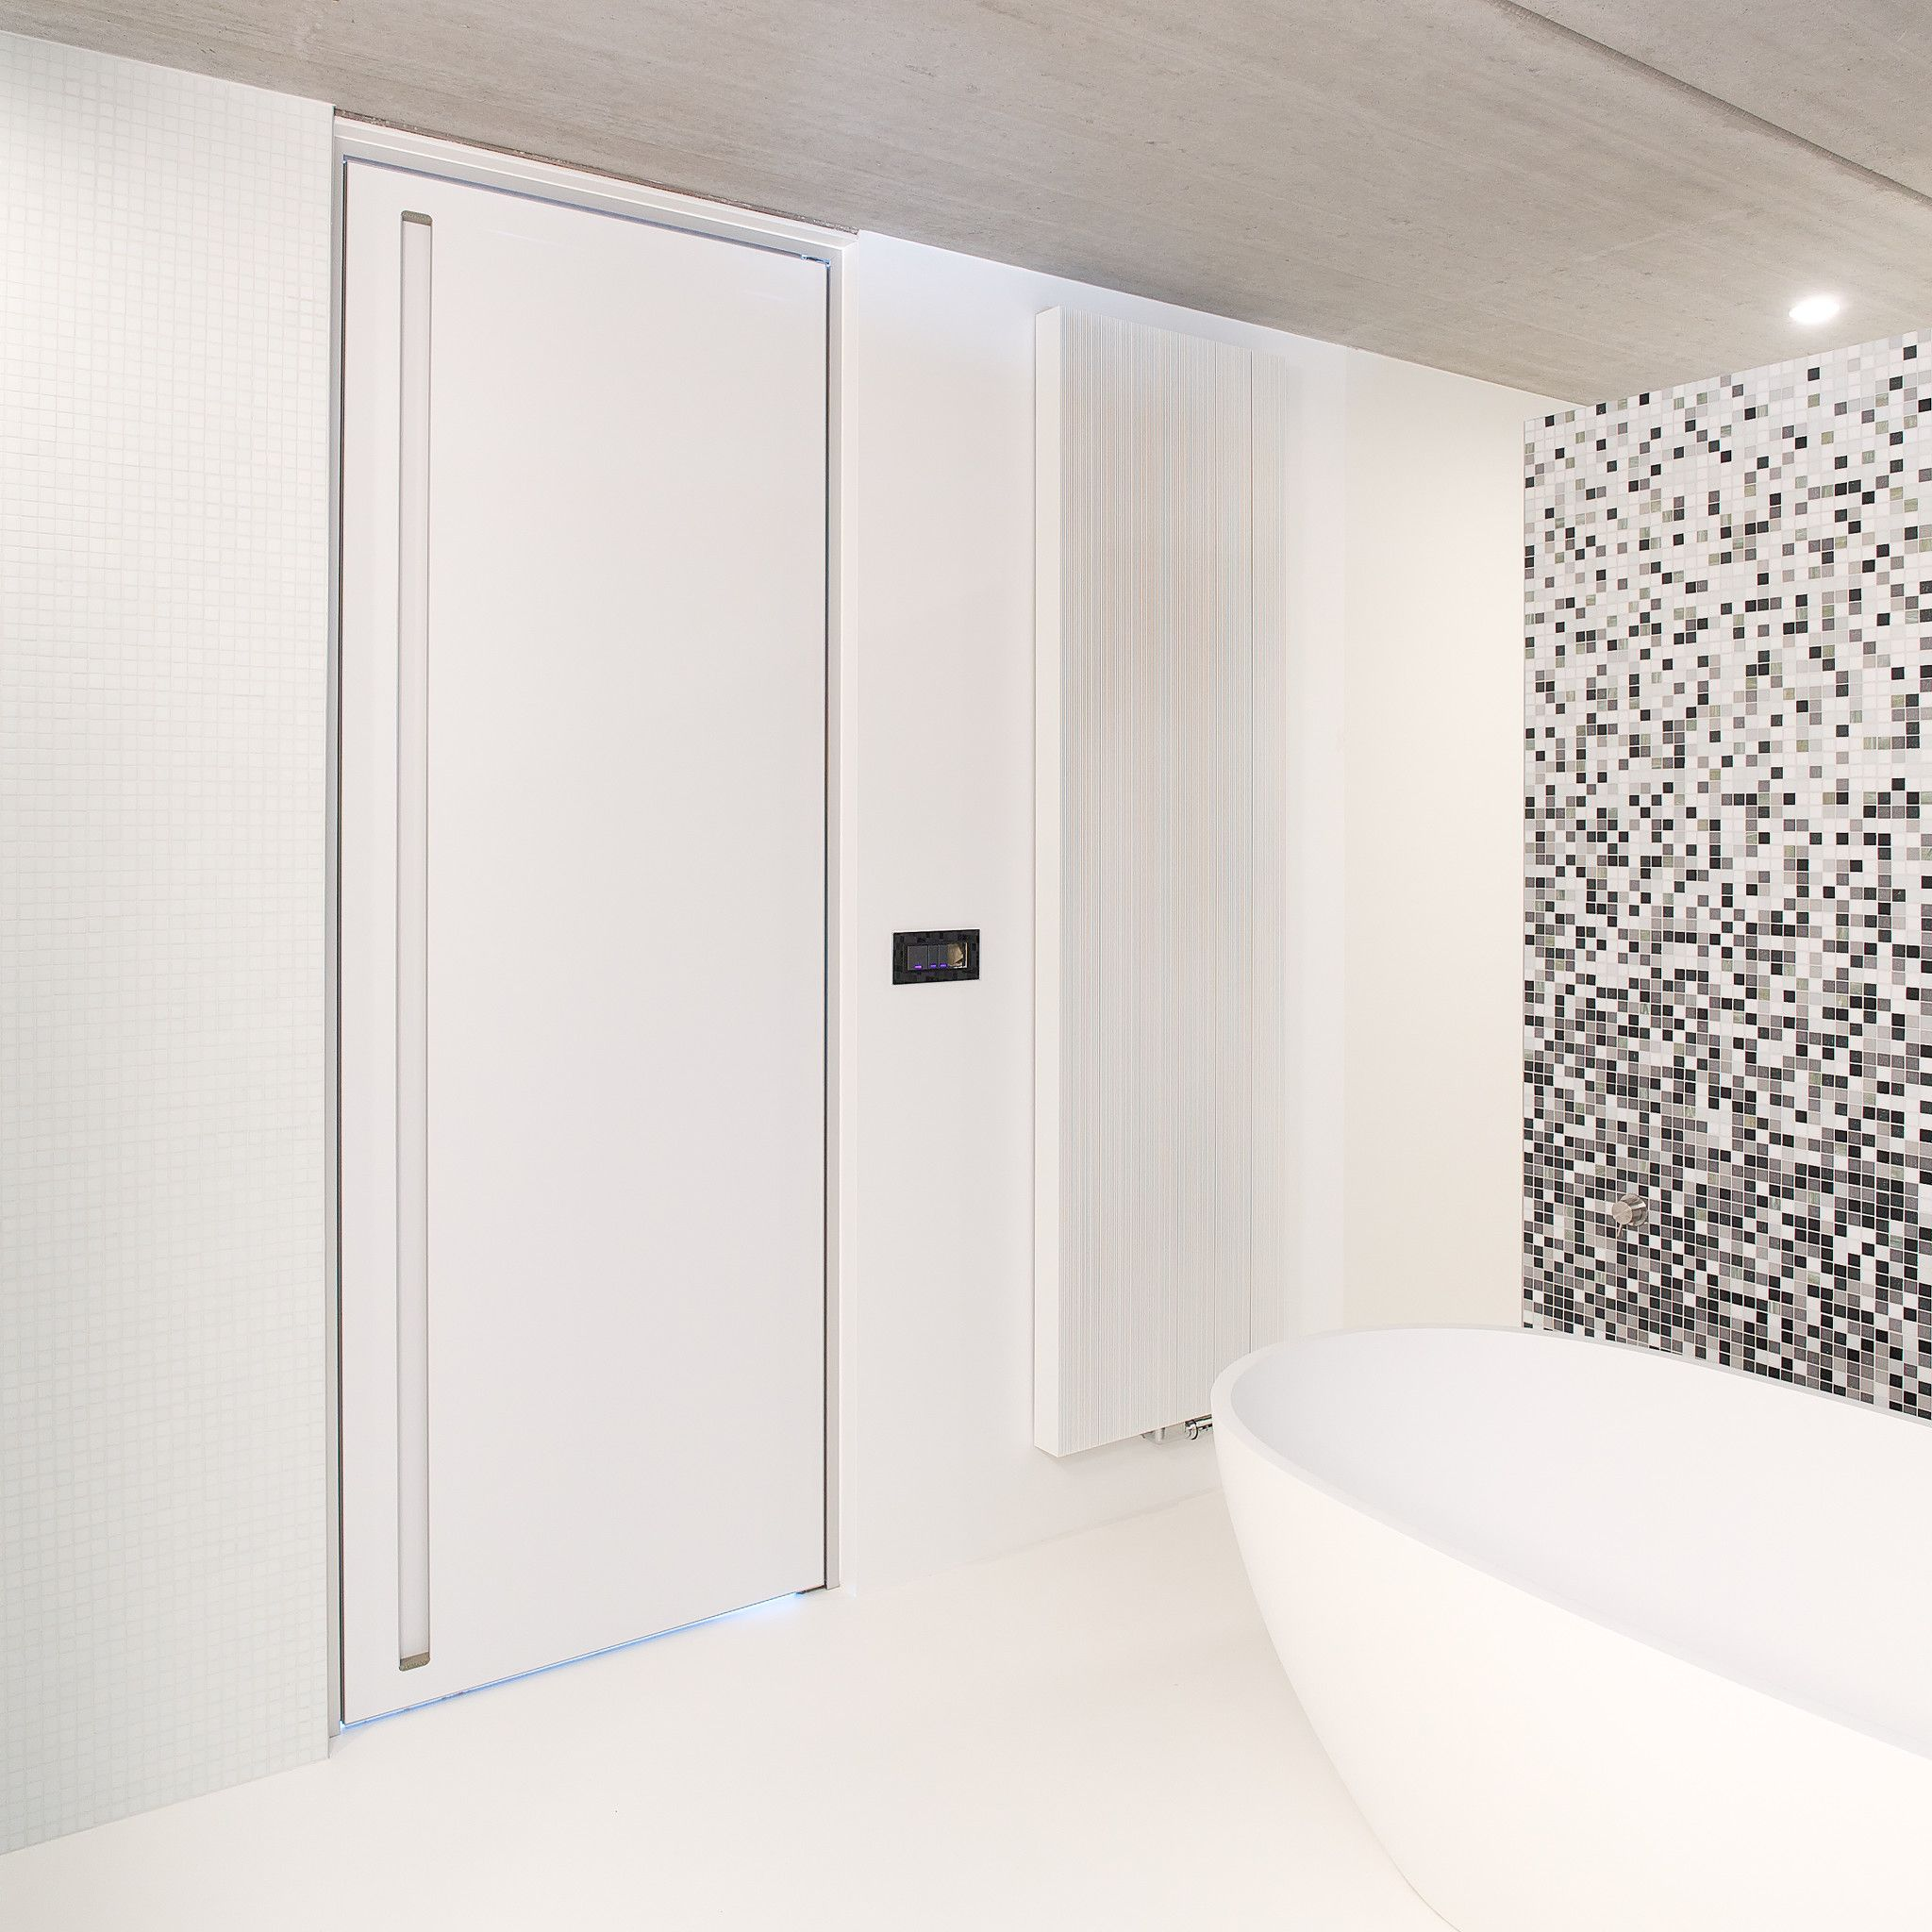 Porte int rieure moderne blanche am nagement porte pinterest interieur portes et for Porte aluminium blanche